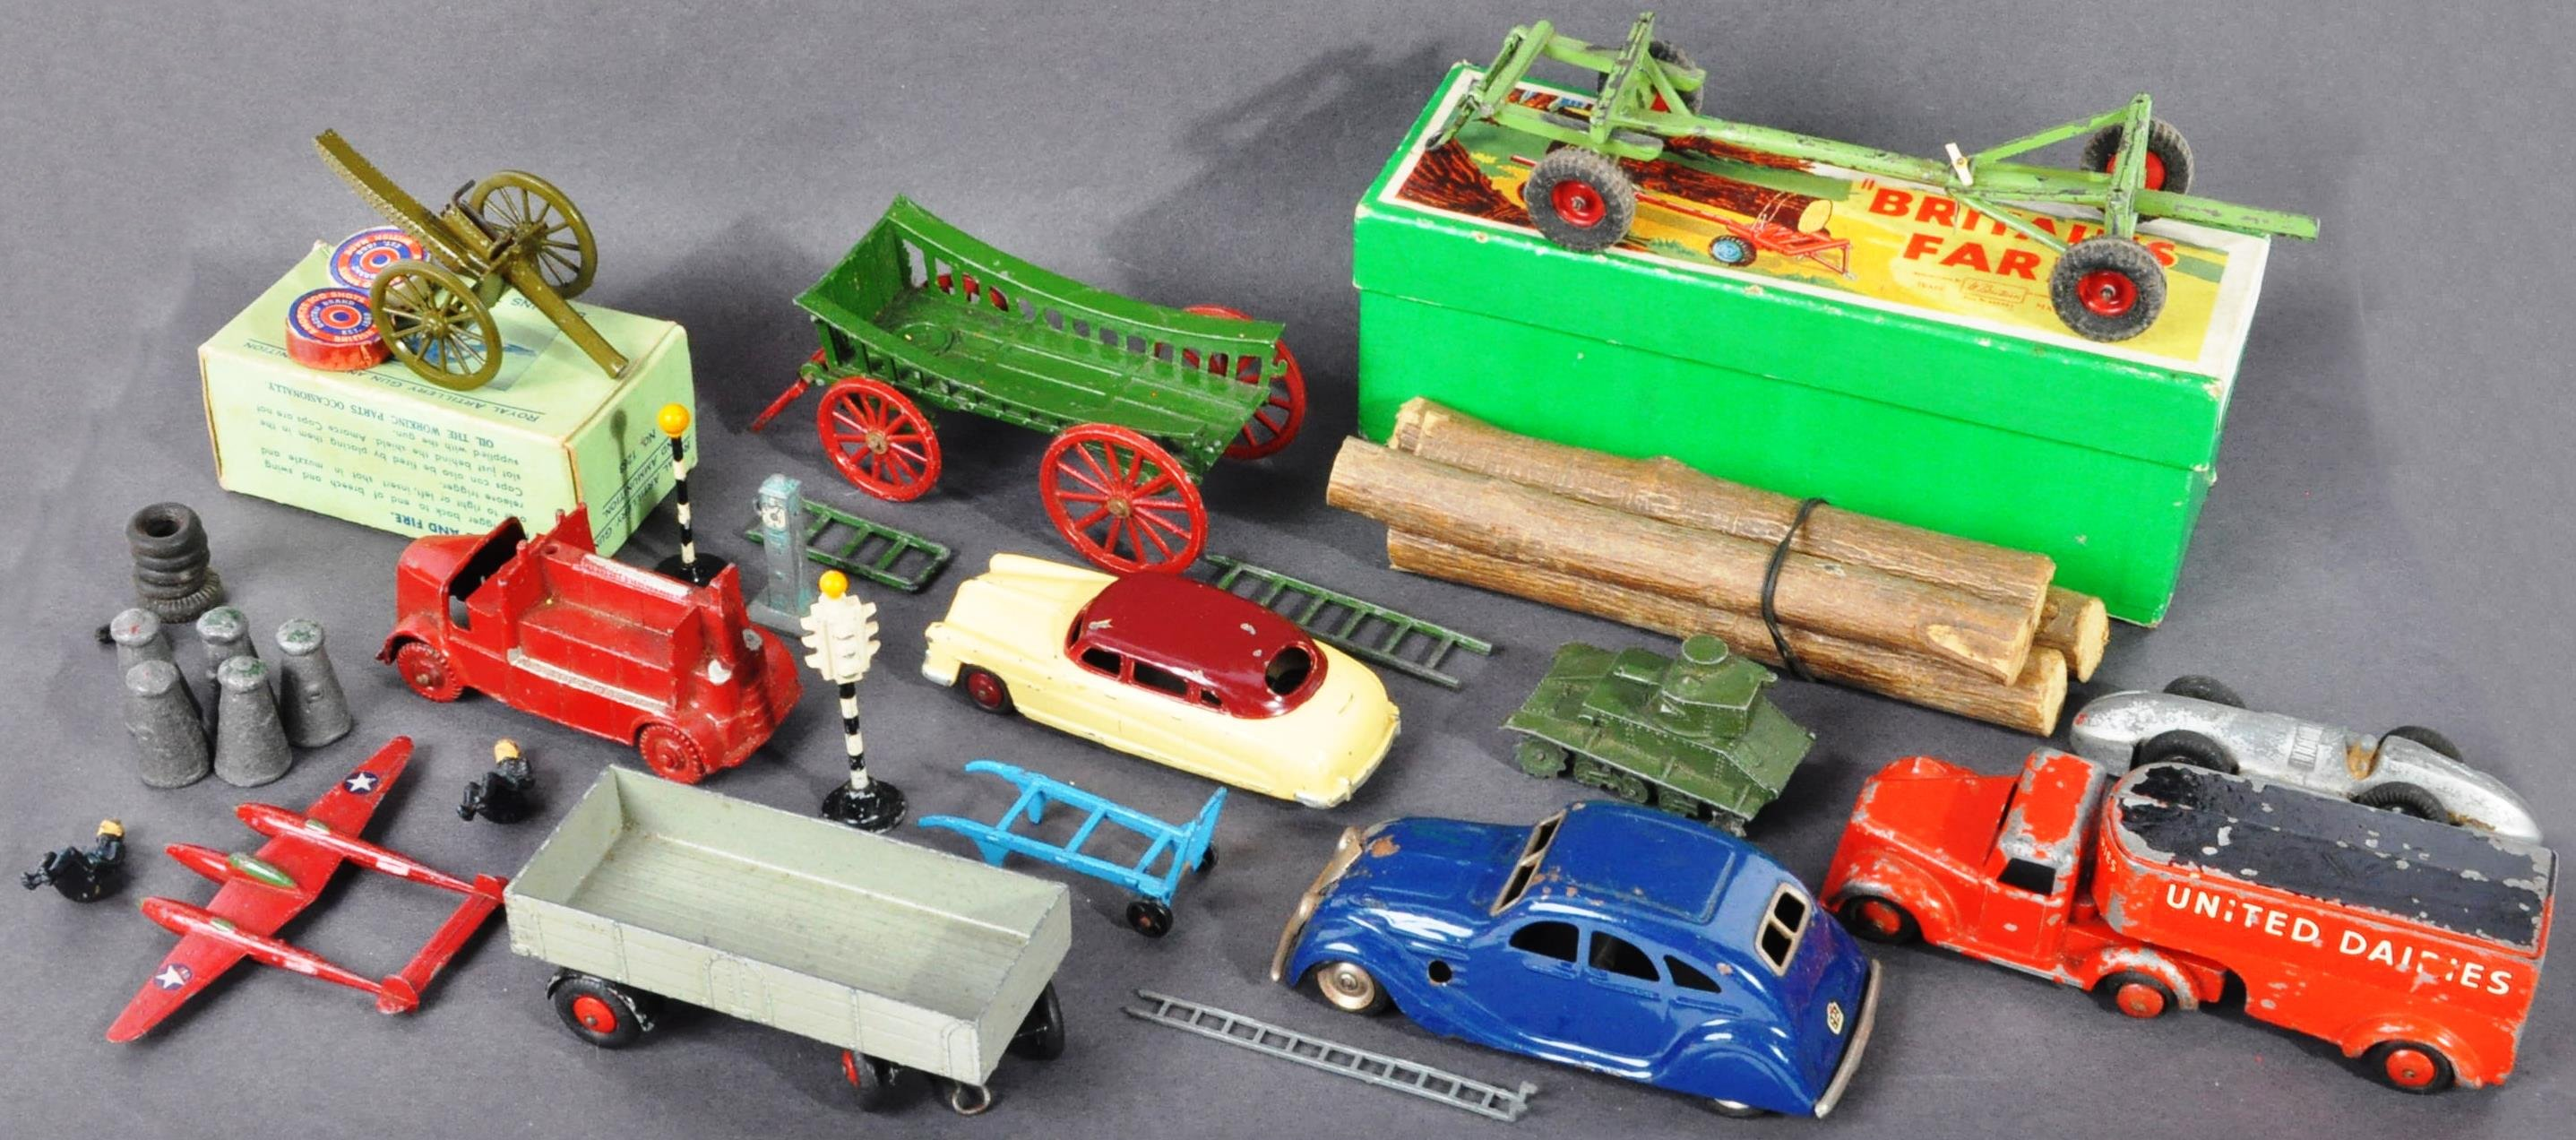 DIECAST - COLLECTION OF ASSORTED ANTIQUE / VINTAGE DIECAST